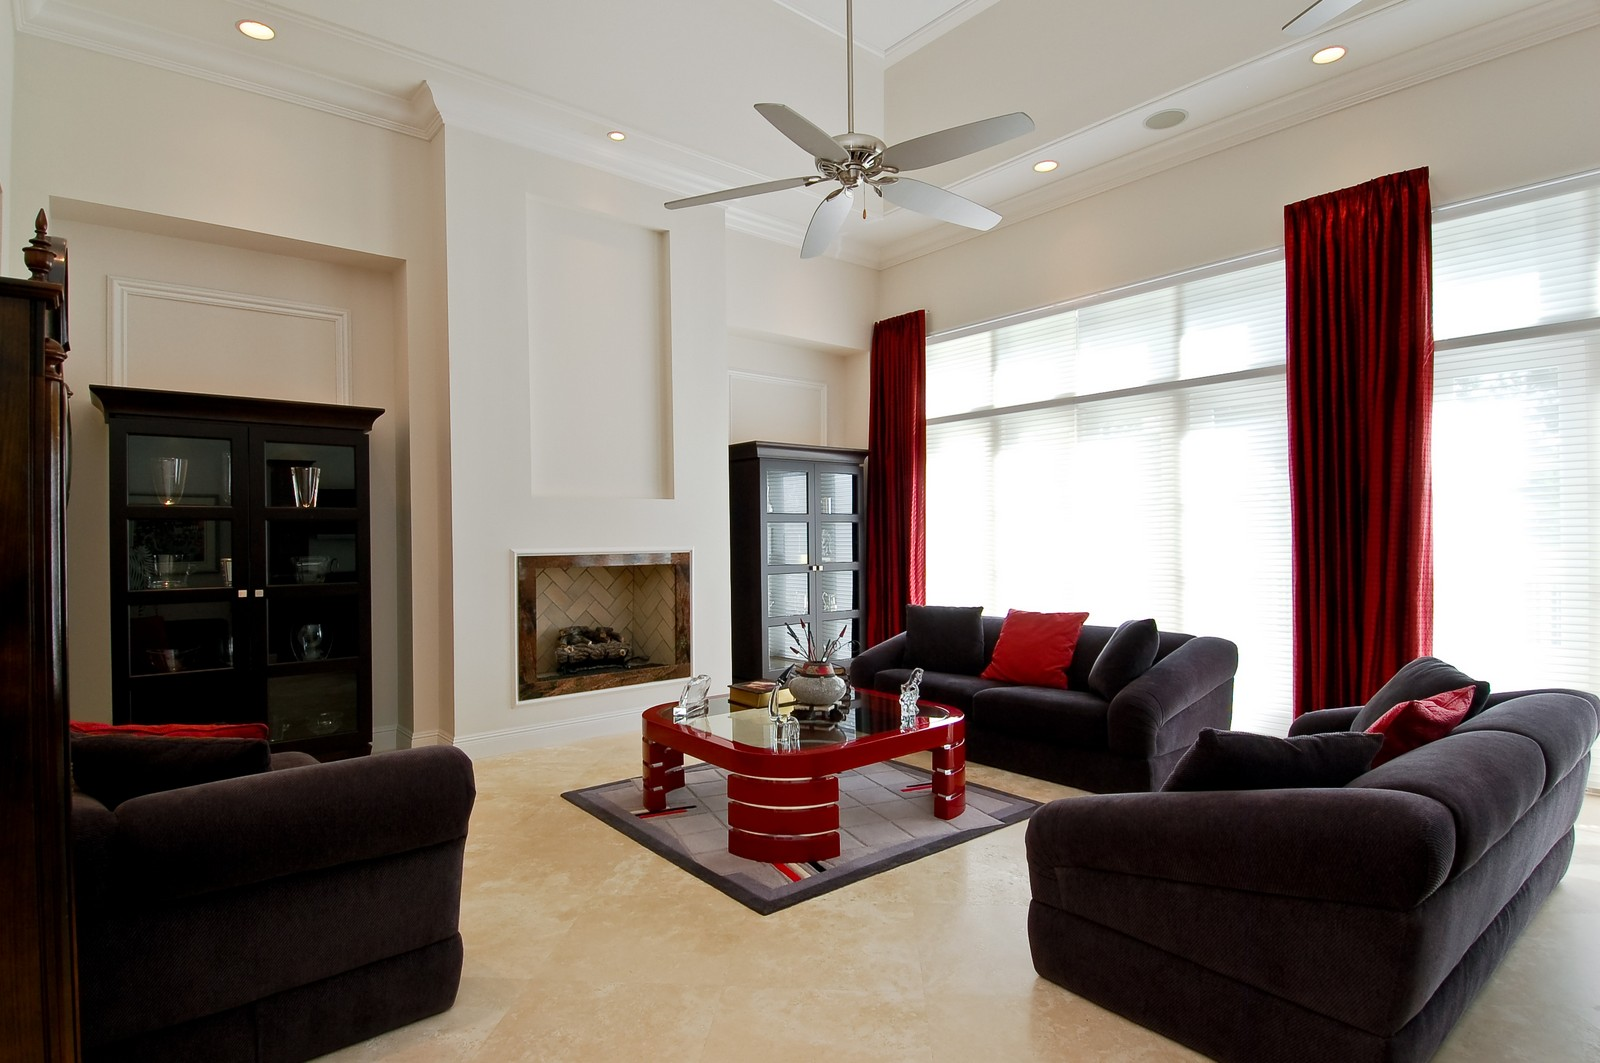 Real Estate Photography - 7478 Valencia Dr, Boca Raton, FL, 33433 - Living Room